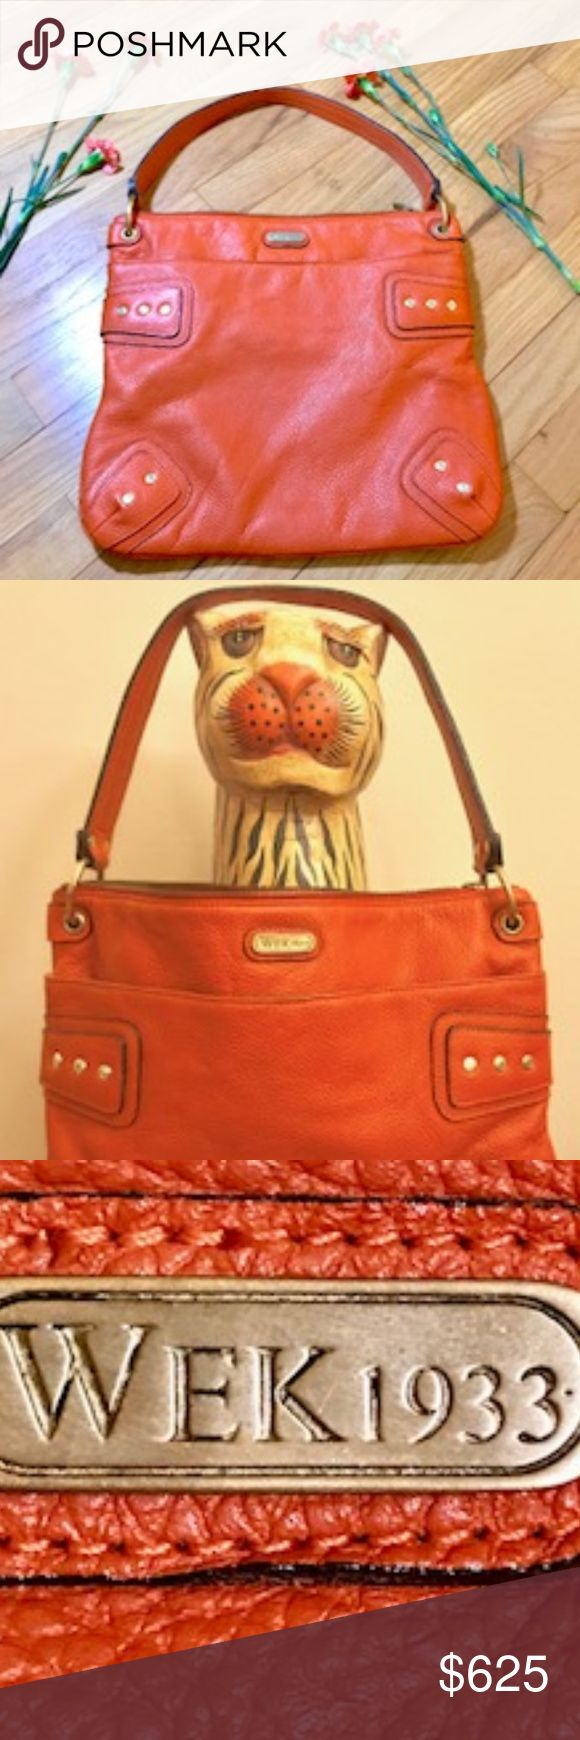 WEK1933 Handbag by Alek Wek Orange Pebble Leather Shoulder Bag. Rare & beautiful!  In 2002 Sudanese born supermodel, artist, author & designer Alek Wek launched an exclusive handbag collection named after the year her father was born. W/special attention to design, detail, hardware & material the bag is very much uniquely one-of-a-kind. Zips at top; inside side pocket that zips. Front pocket w/magnetic closure & back zip pocket.  Like new - slight spot shown in last pic-is on the upper left…